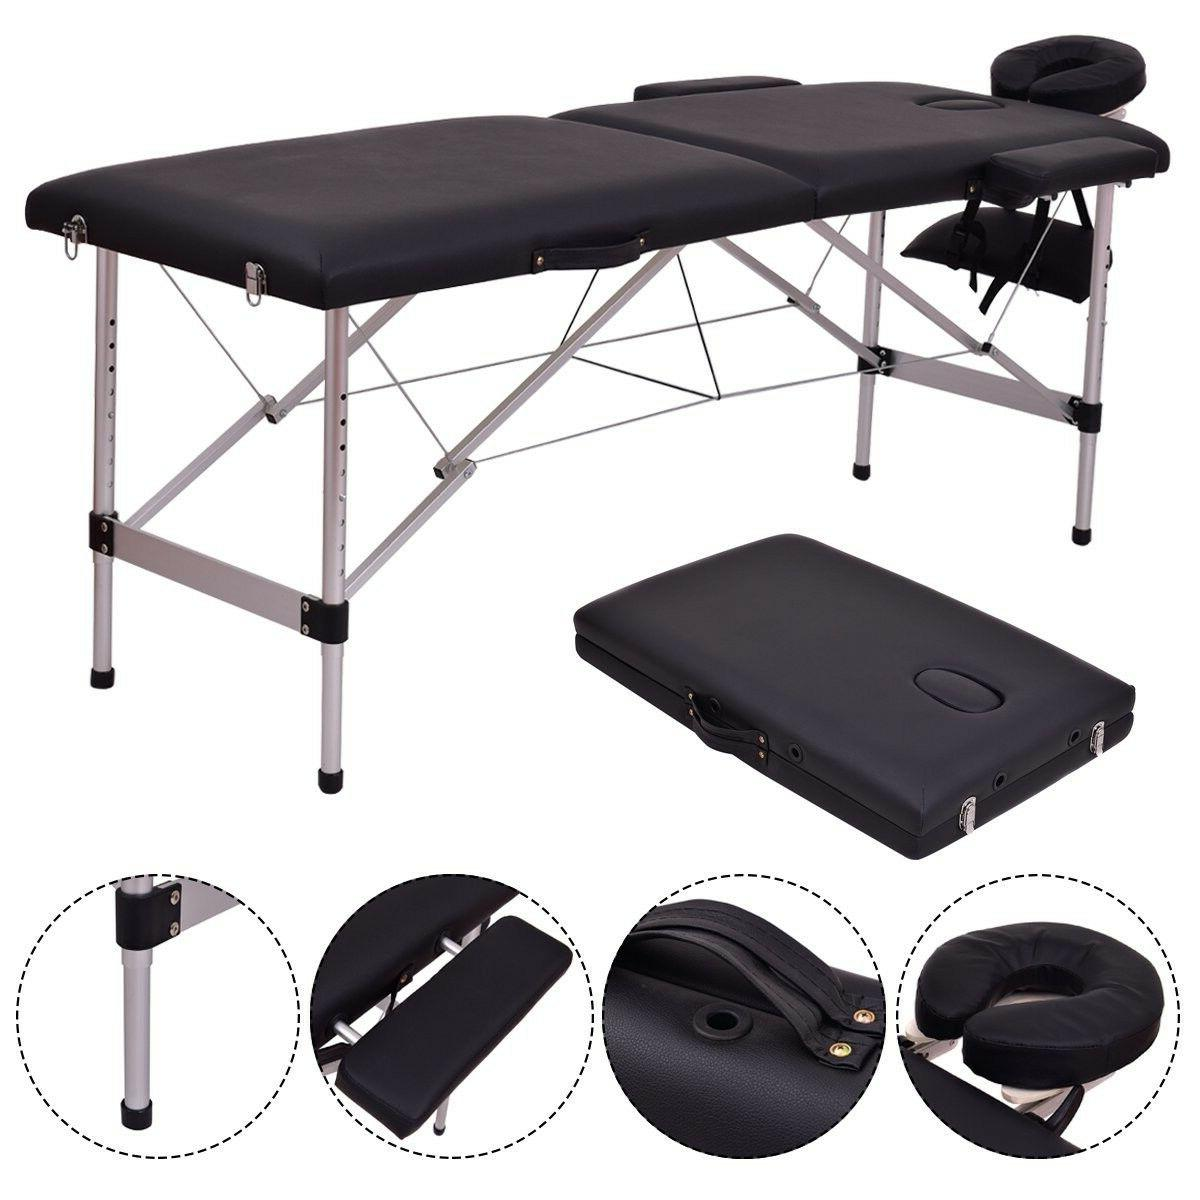 Giantex 2 Section Portable Table Facial Bed w/F